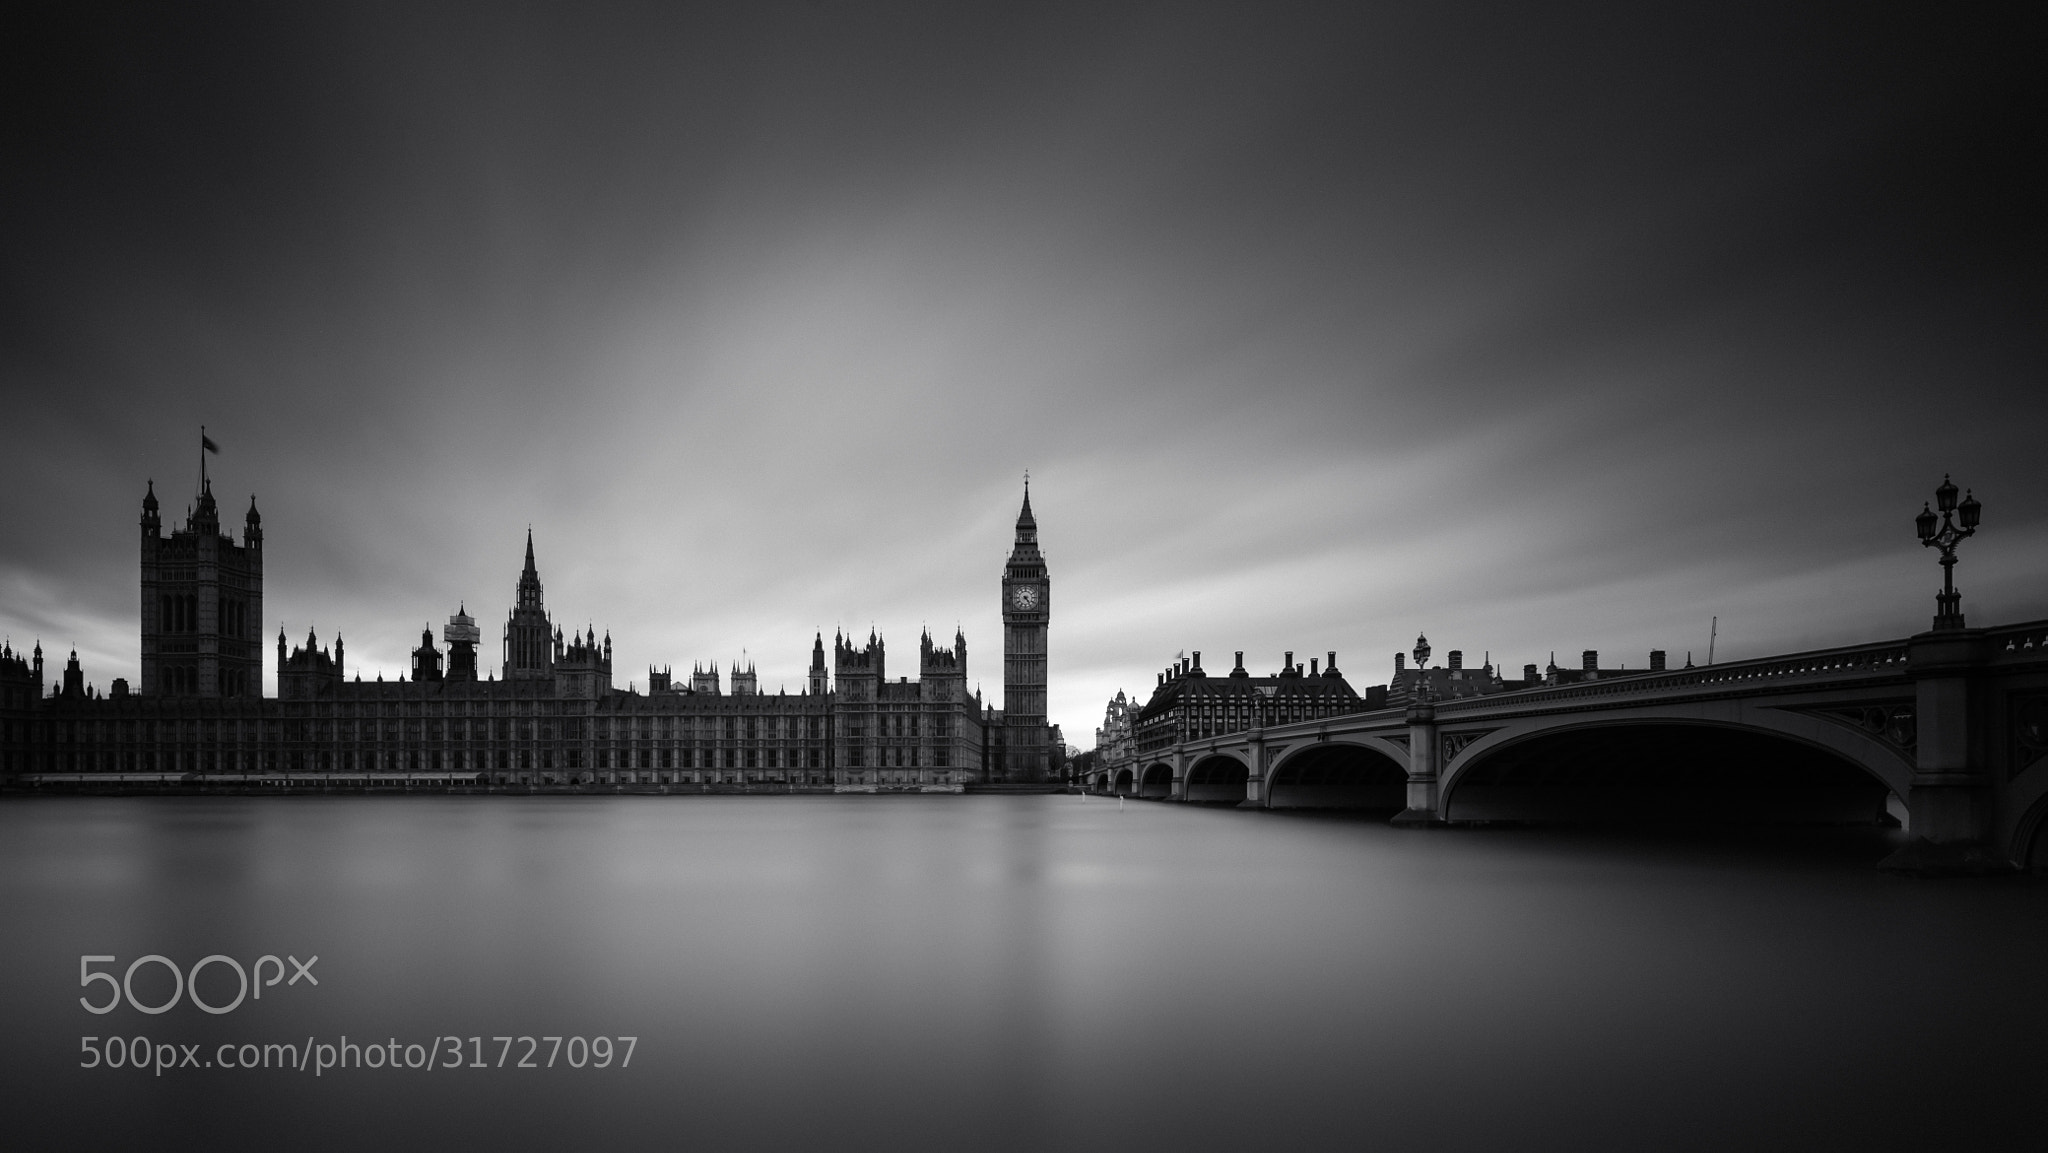 Photograph Parliament by .Vulture Labs on 500px